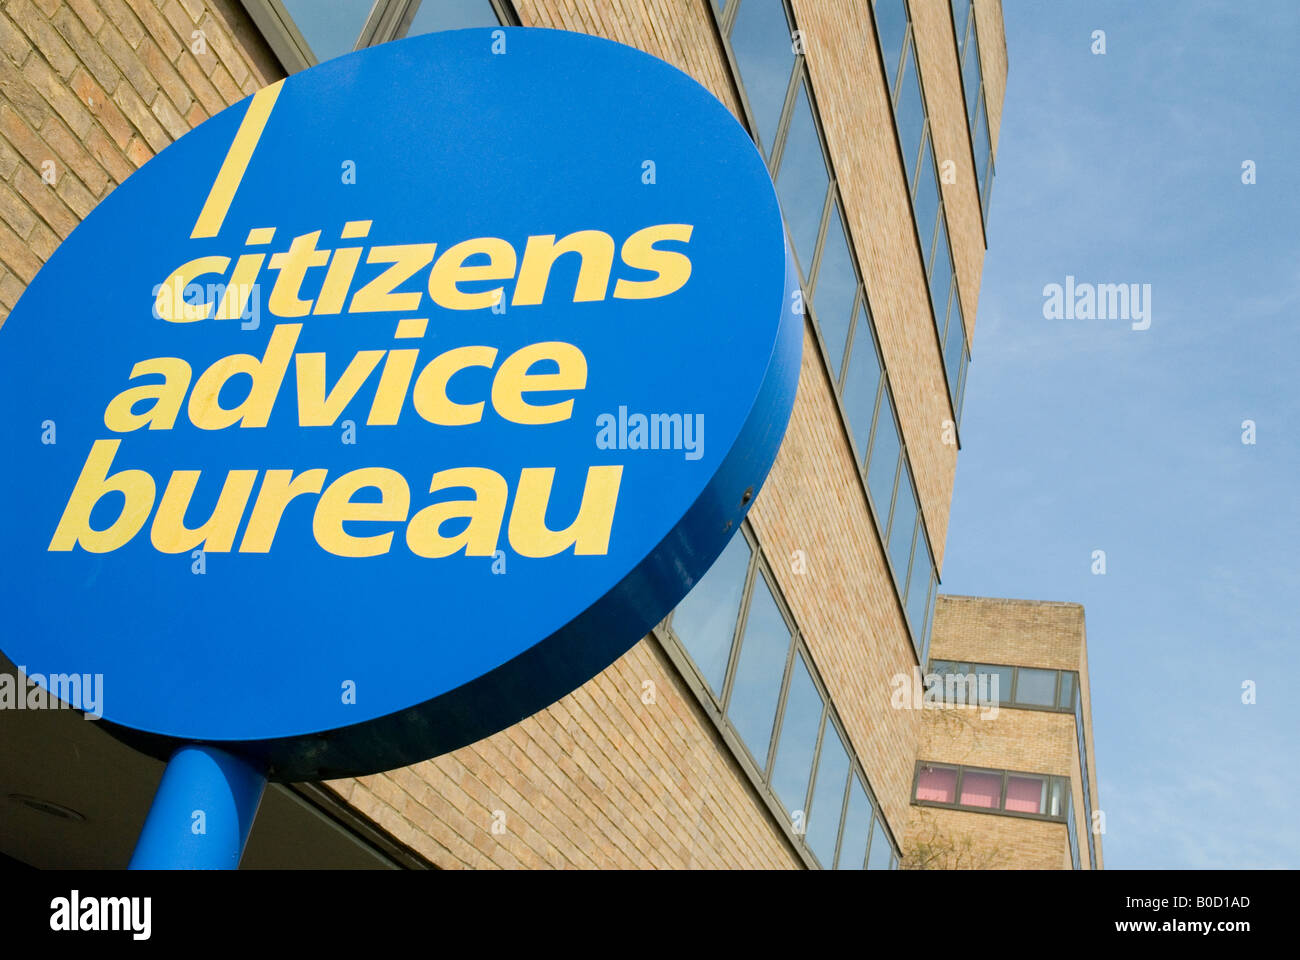 Citizens Advice Bureau - EDITORIAL USE ONLY - Stock Image